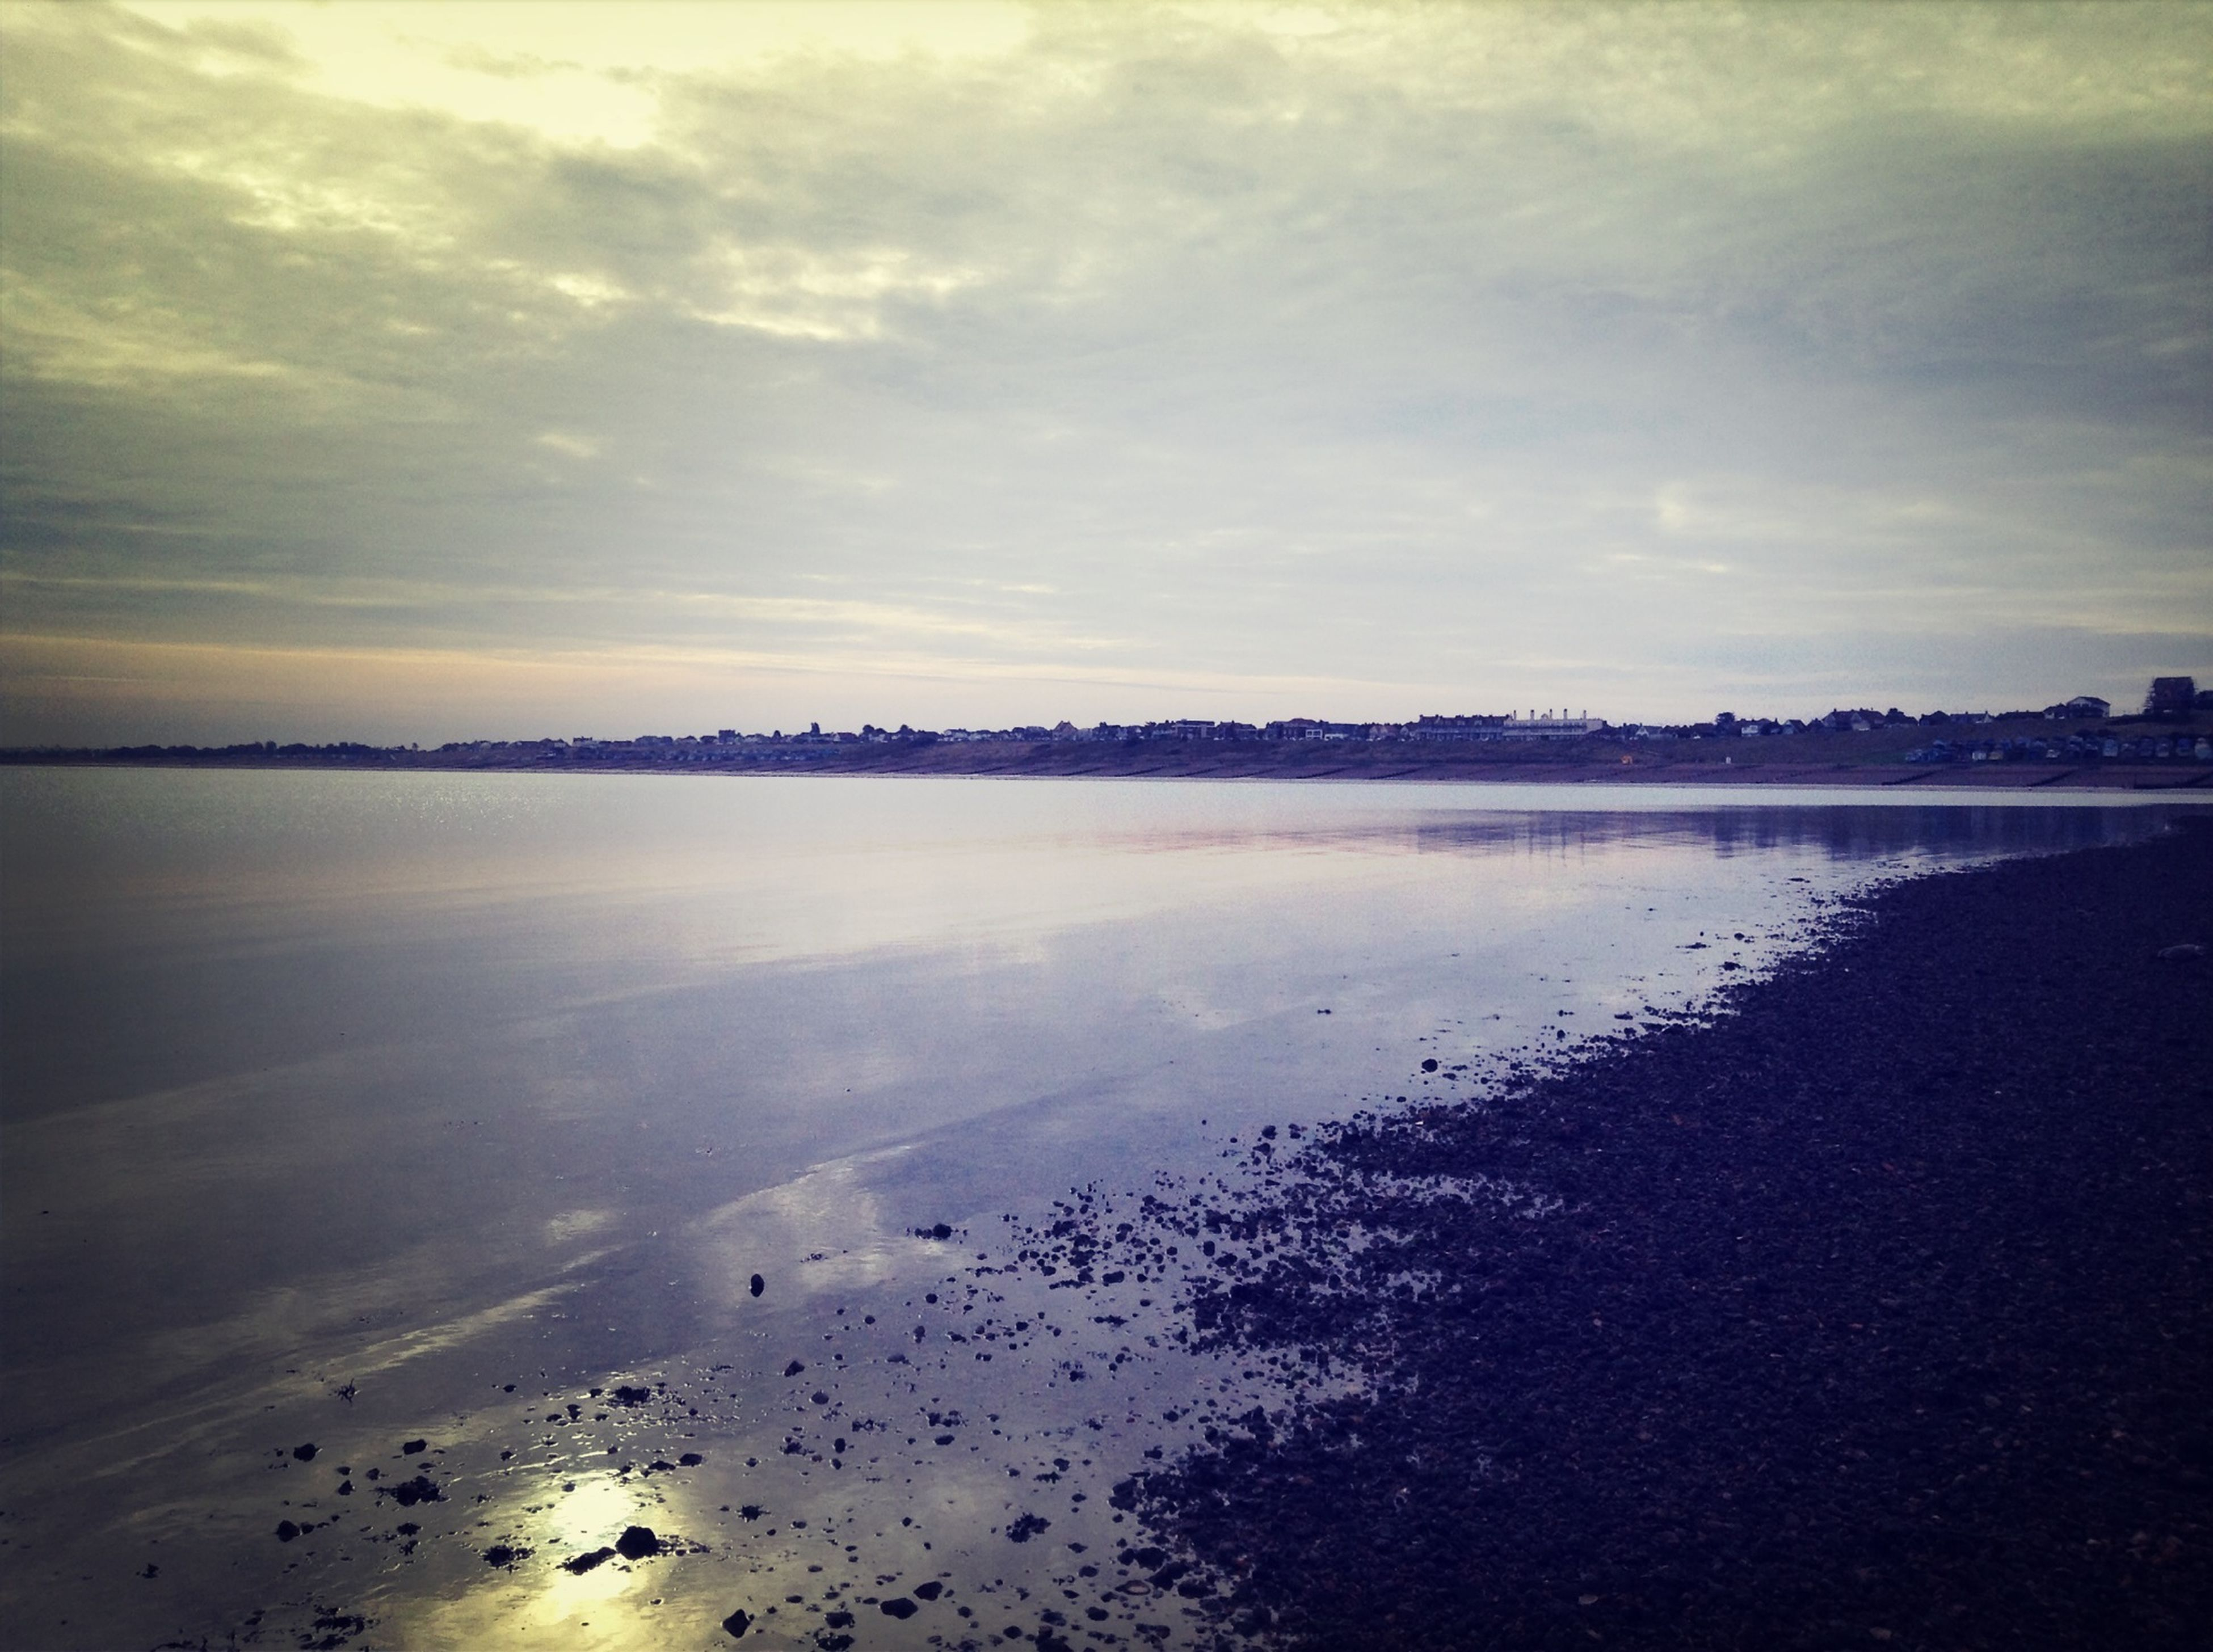 water, sky, tranquil scene, scenics, tranquility, beach, beauty in nature, cloud - sky, sea, shore, nature, reflection, sunset, idyllic, sand, cloudy, cloud, dusk, horizon over water, outdoors